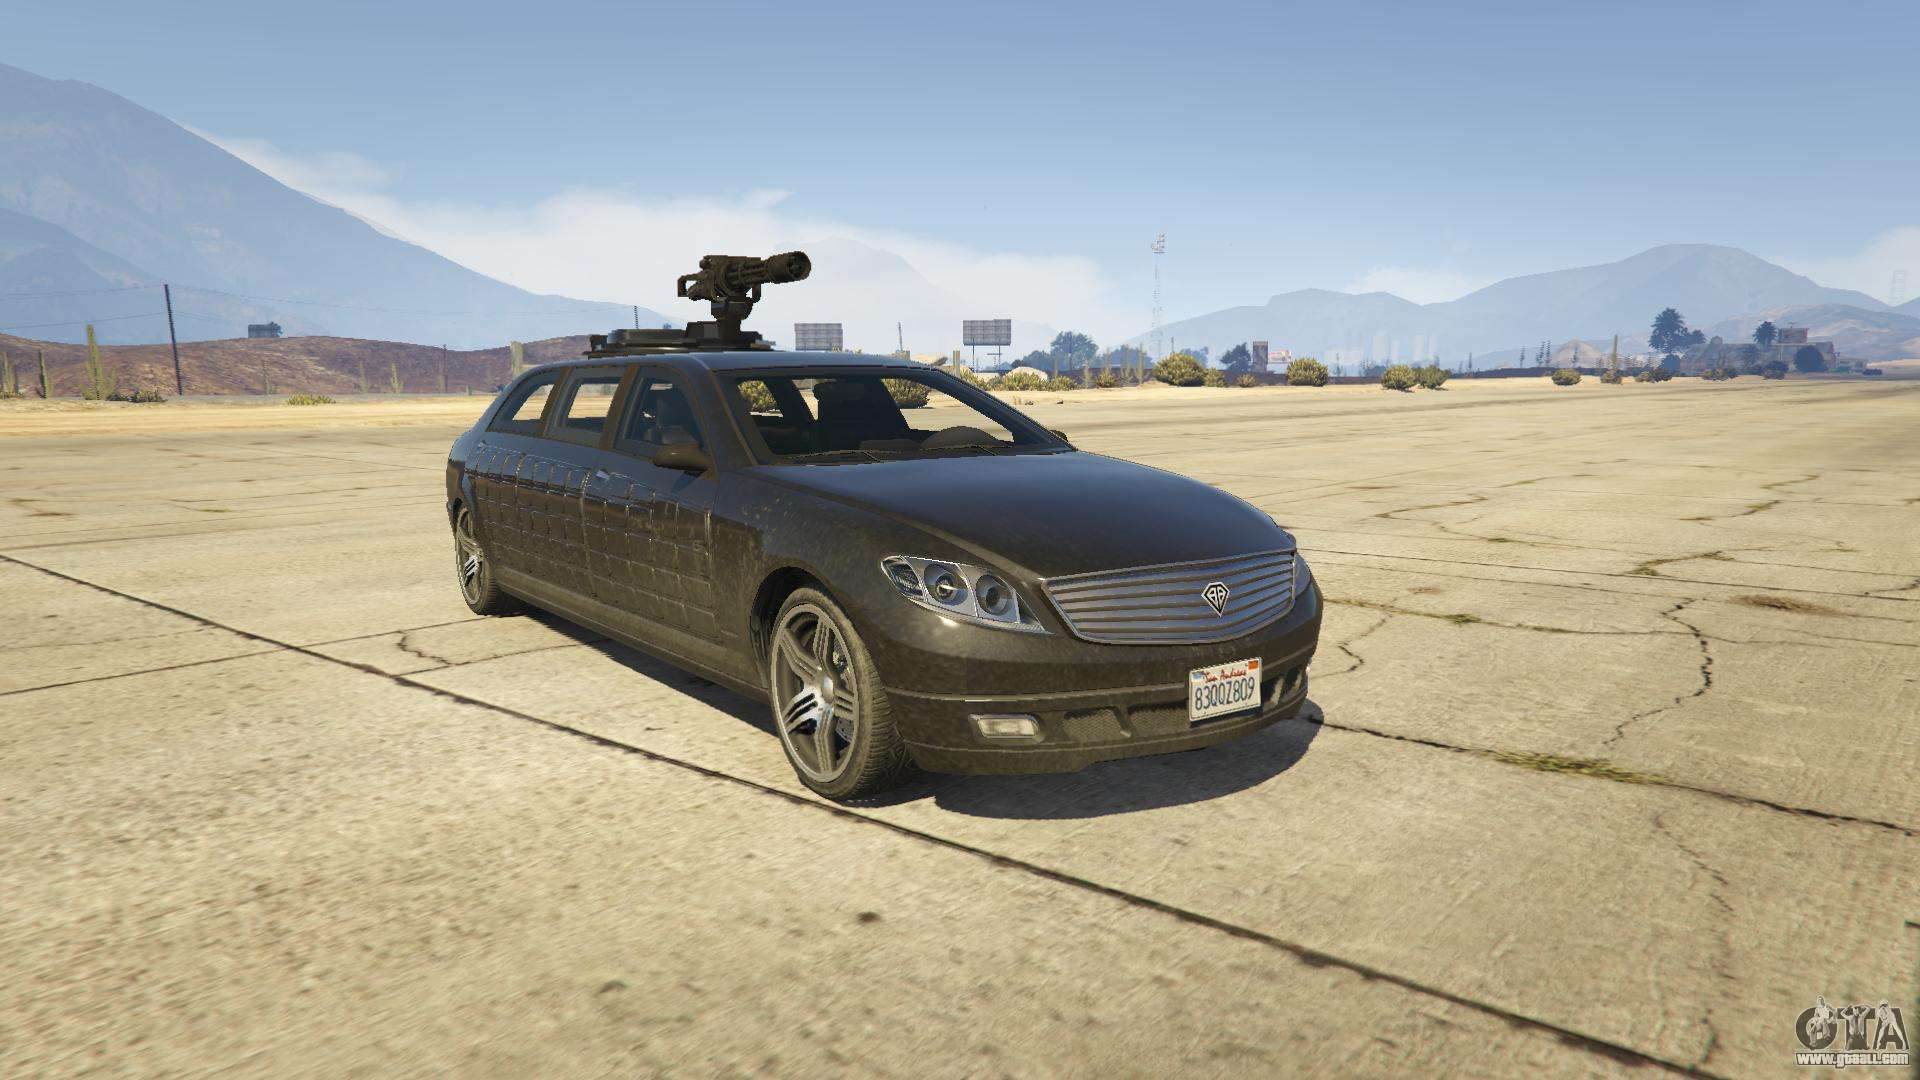 Benefactor Turreted Limo From Gta 5 Screenshots